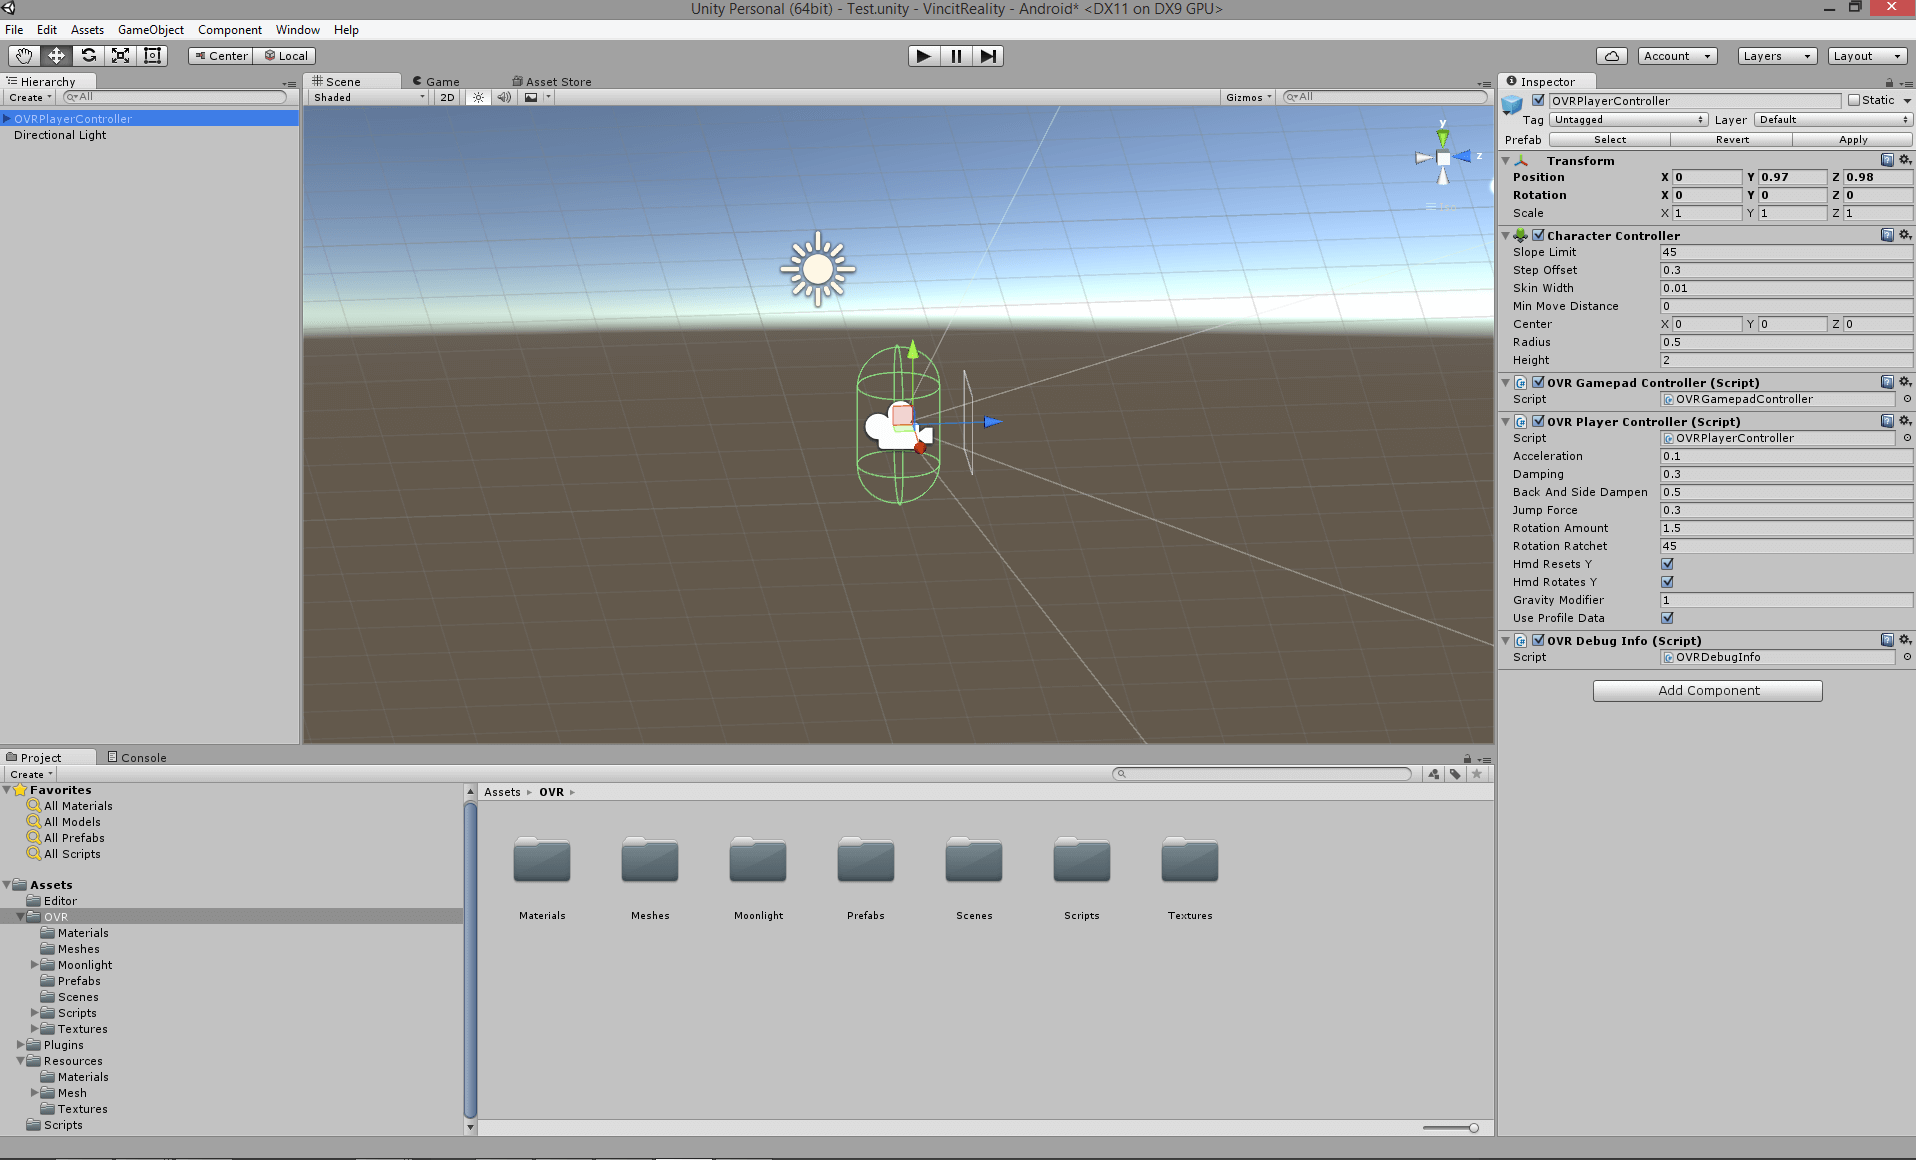 Unity editor view with Oculus components placed.